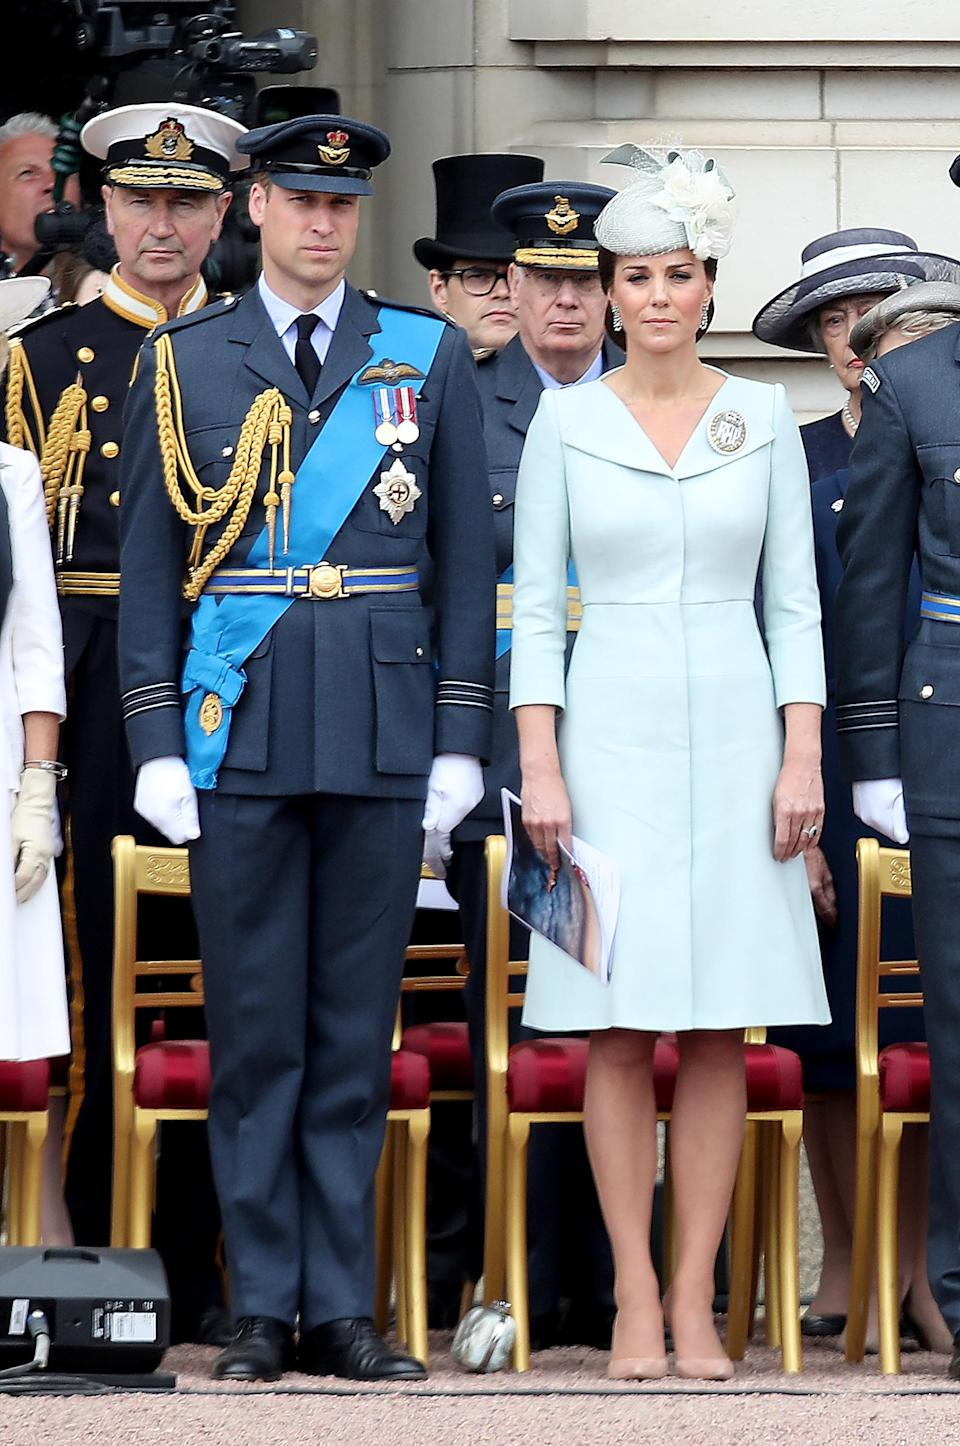 <p>The Duchess of Cambridge wore an ice blue dress by Alexander McQueen for the RAF's centenary celebrations on July 10, 2018. <em>[Photo: Getty]</em> </p>